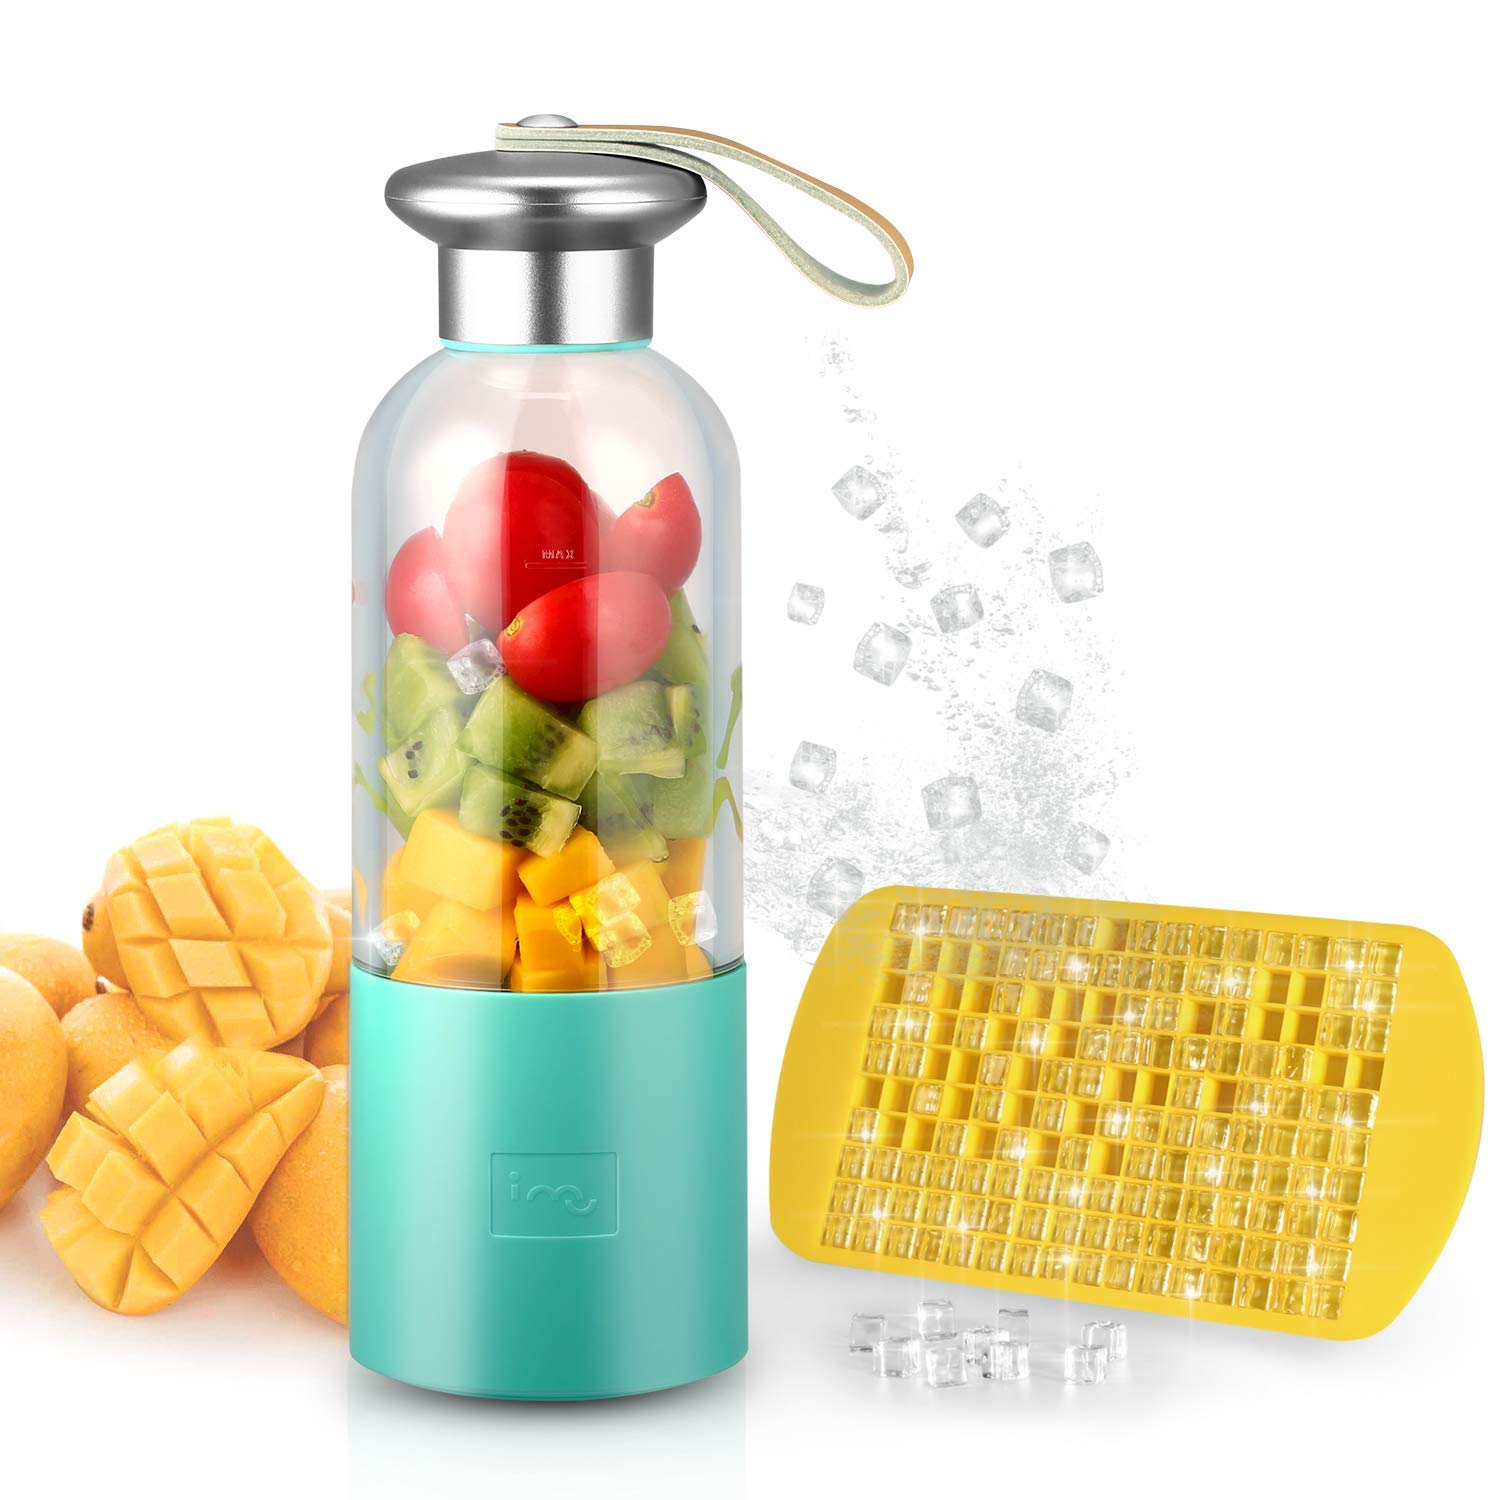 TOD-Portable Smoothie Blender Small Blender Usb Rechargeable Single Served For Shakes And Smoothies, Fruit Mixer Machine For ITOD-Portable Smoothie Blender Small Blender Usb Rechargeable Single Served For Shakes And Smoothies, Fruit Mixer Machine For I